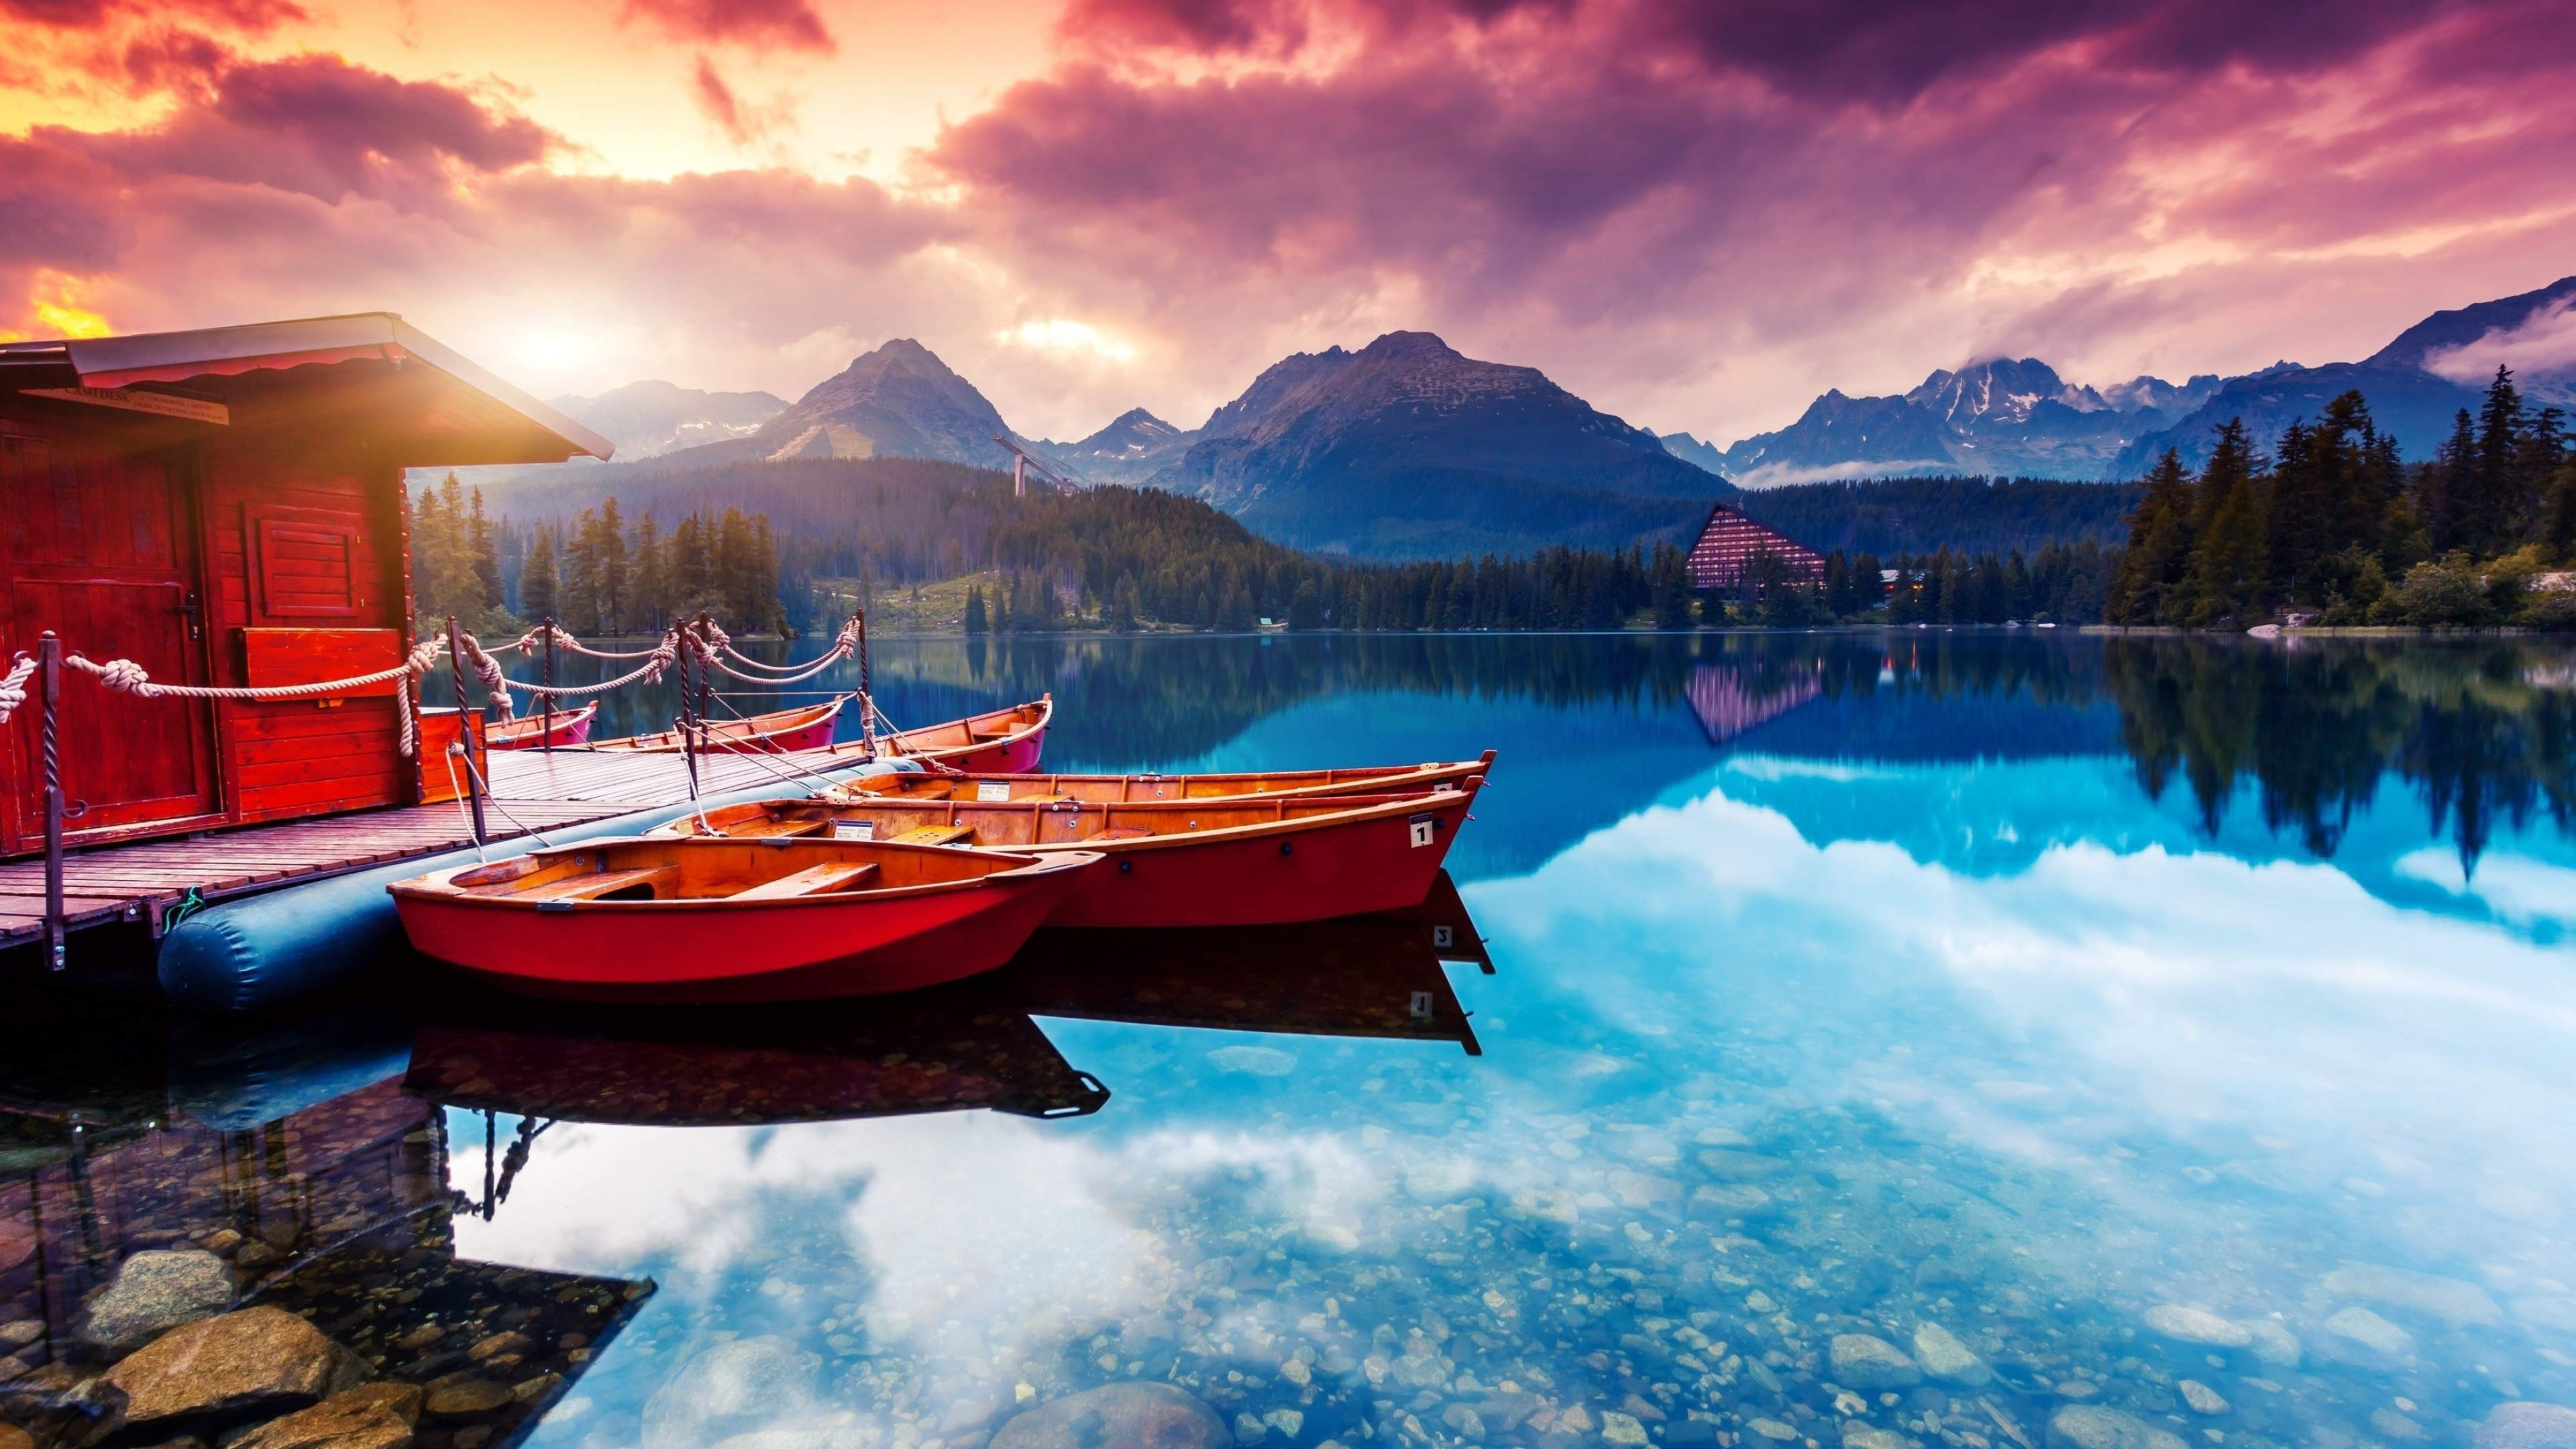 4K Landscape Scenery Wallpapers High Quality | Download Free